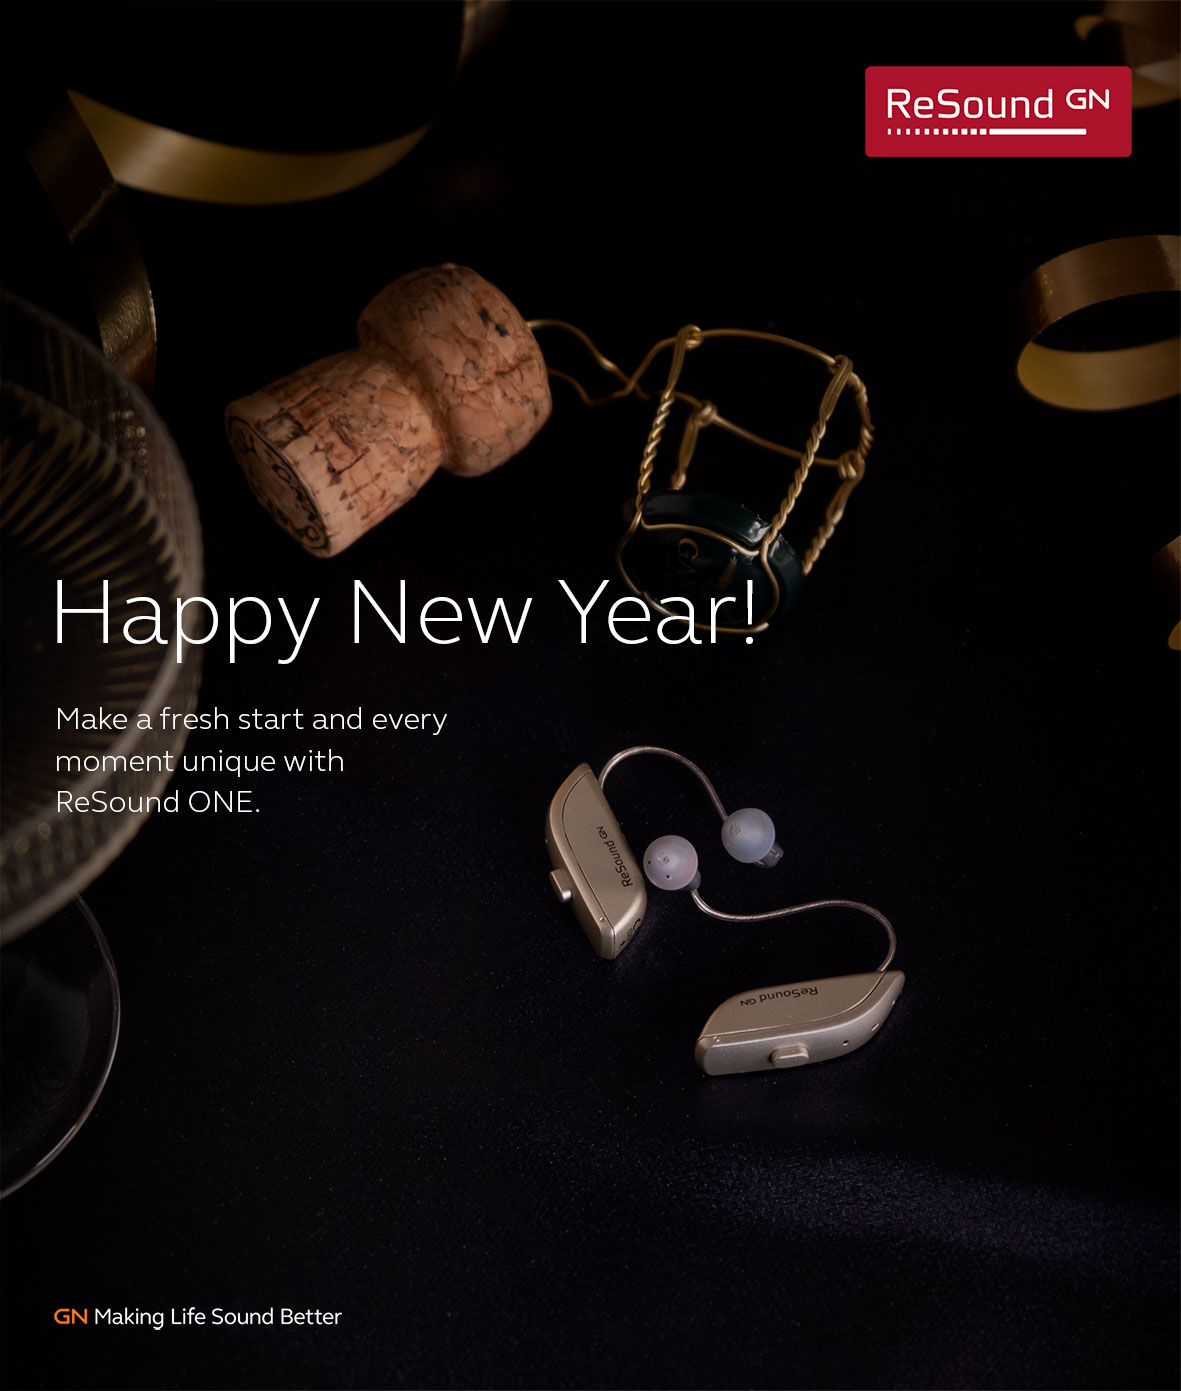 resound one hearing aids in singapore